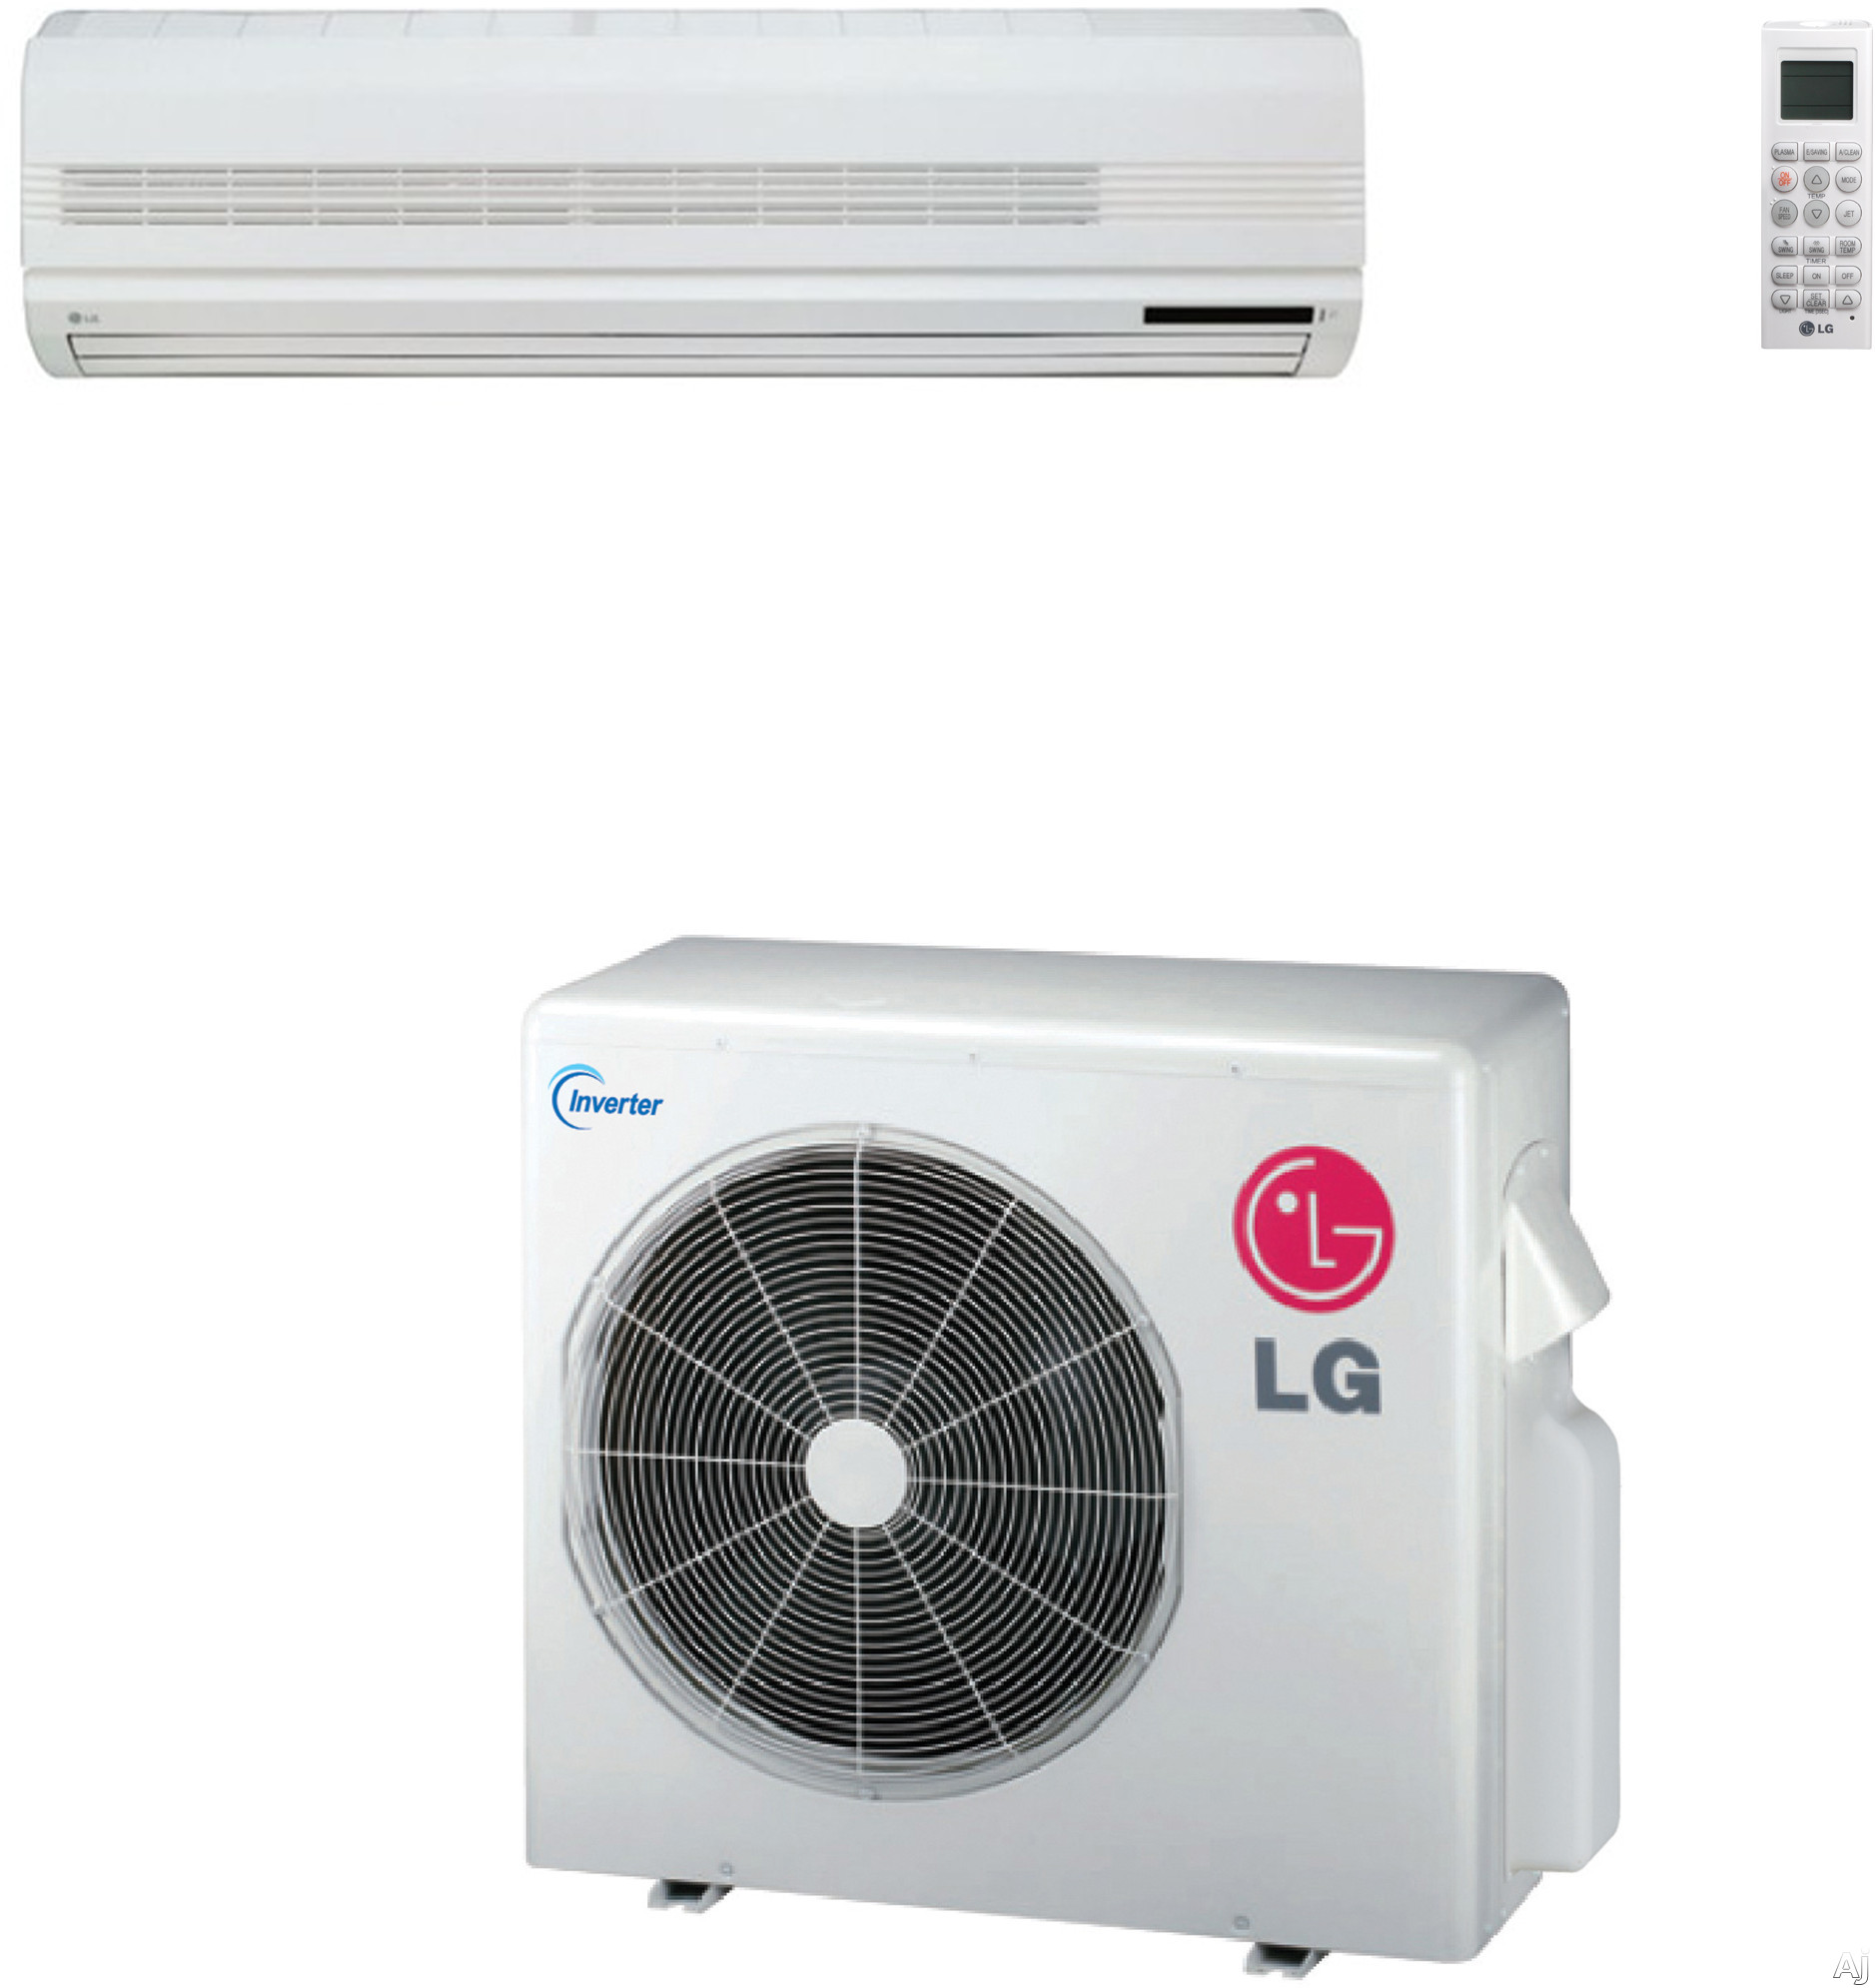 LG LS307HV3 30,000 BTU Single Zone Wall-Mount Ductless Split System with 32,000 BTU Heat Pump, 10.0 EER, Inverter and R-410A Refrigerant (LSN307HV3 Indoor/LSU307HV3 Outdoor)